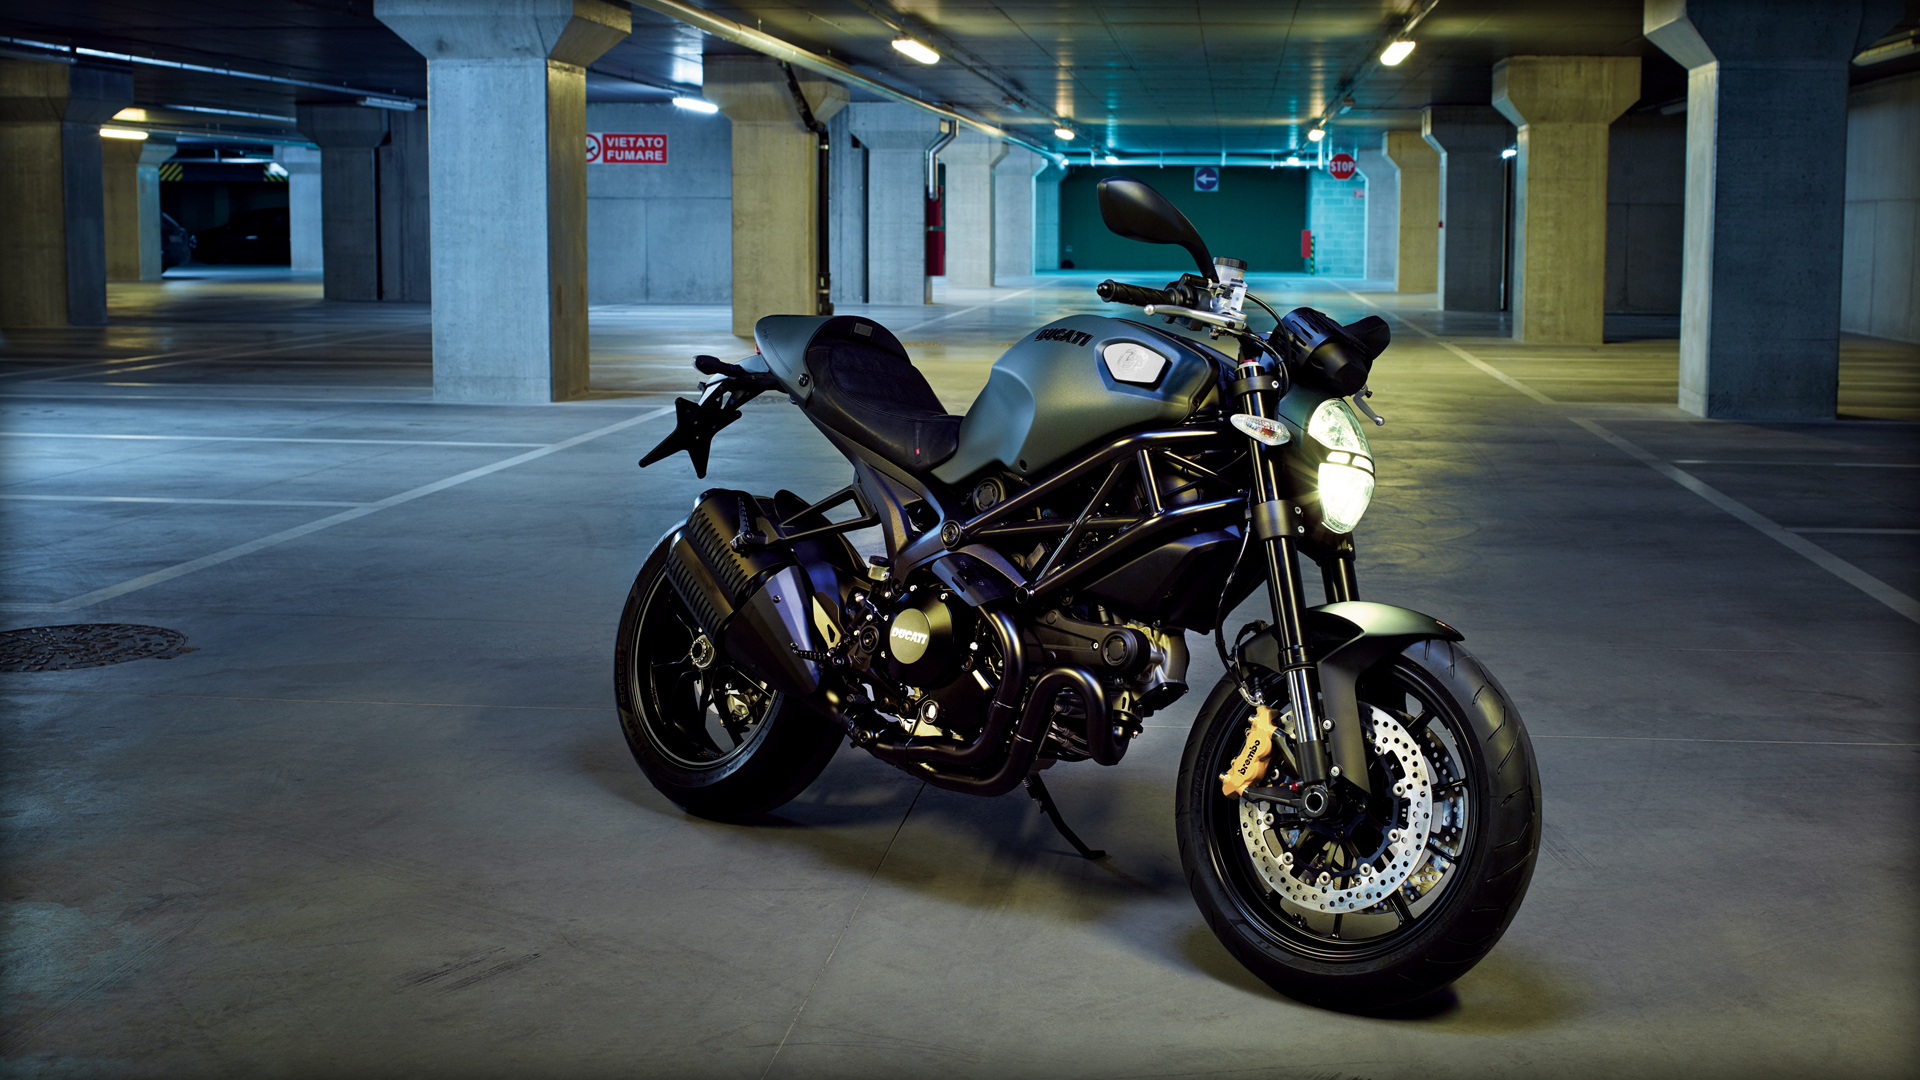 2 Ducati Monster 1200 HD Wallpapers | Background Images ...